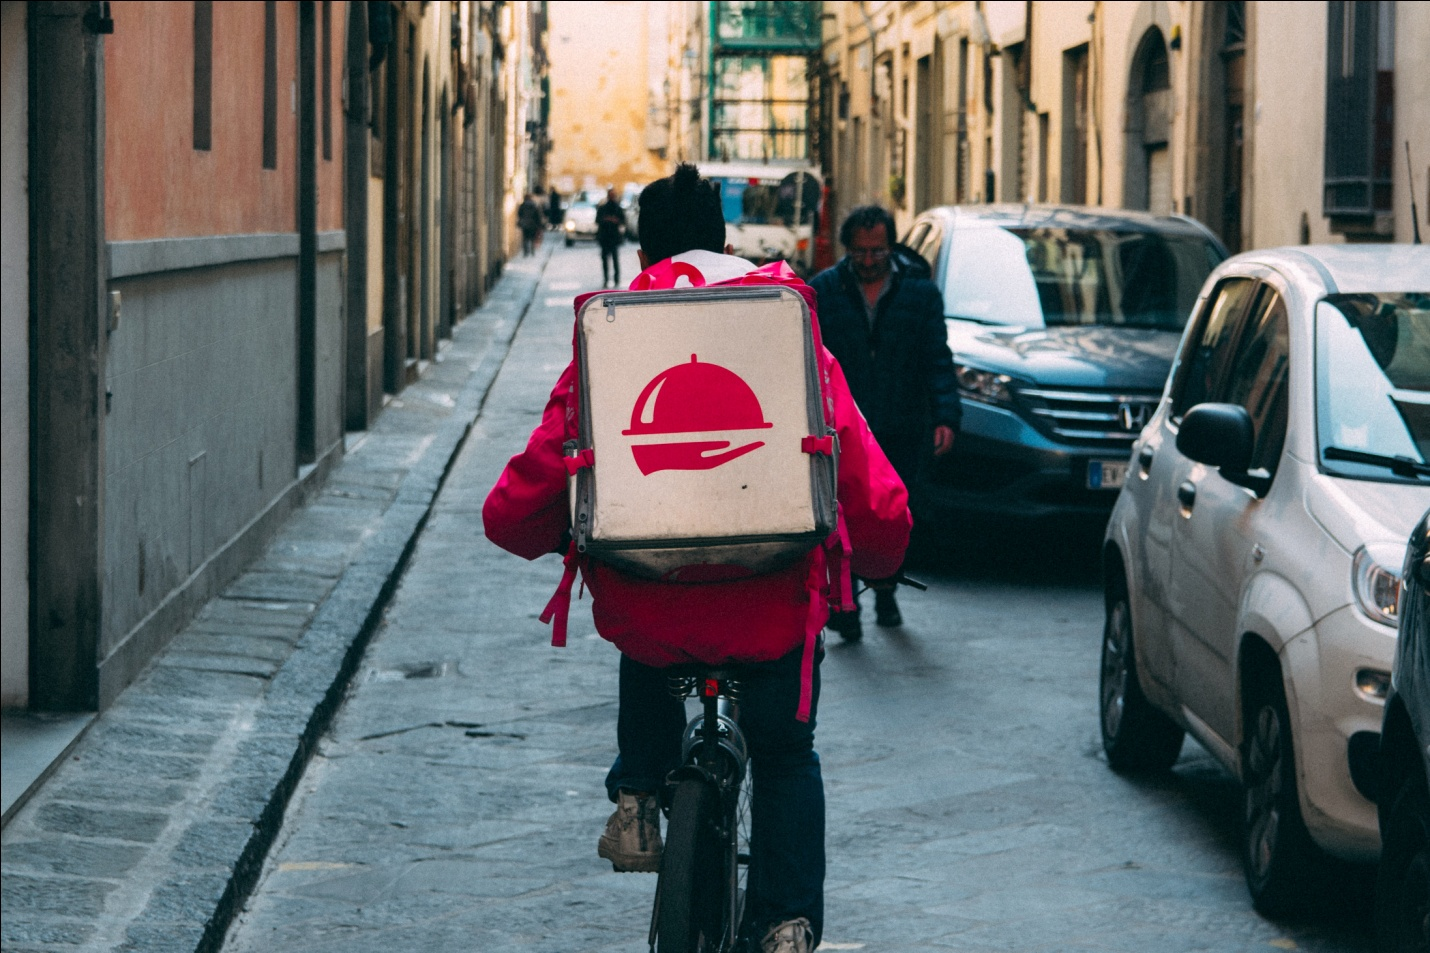 delivery boy on cycle